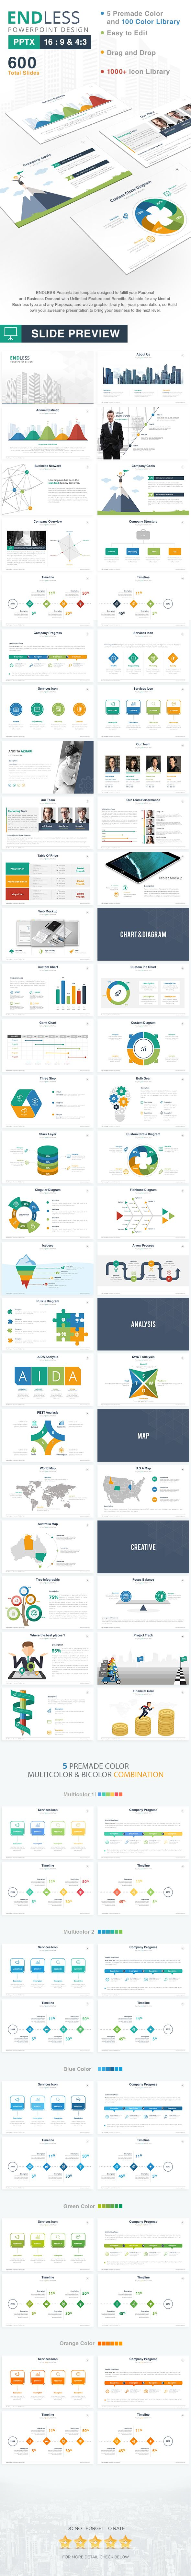 best ideas about great powerpoint presentations endless powerpoint template design